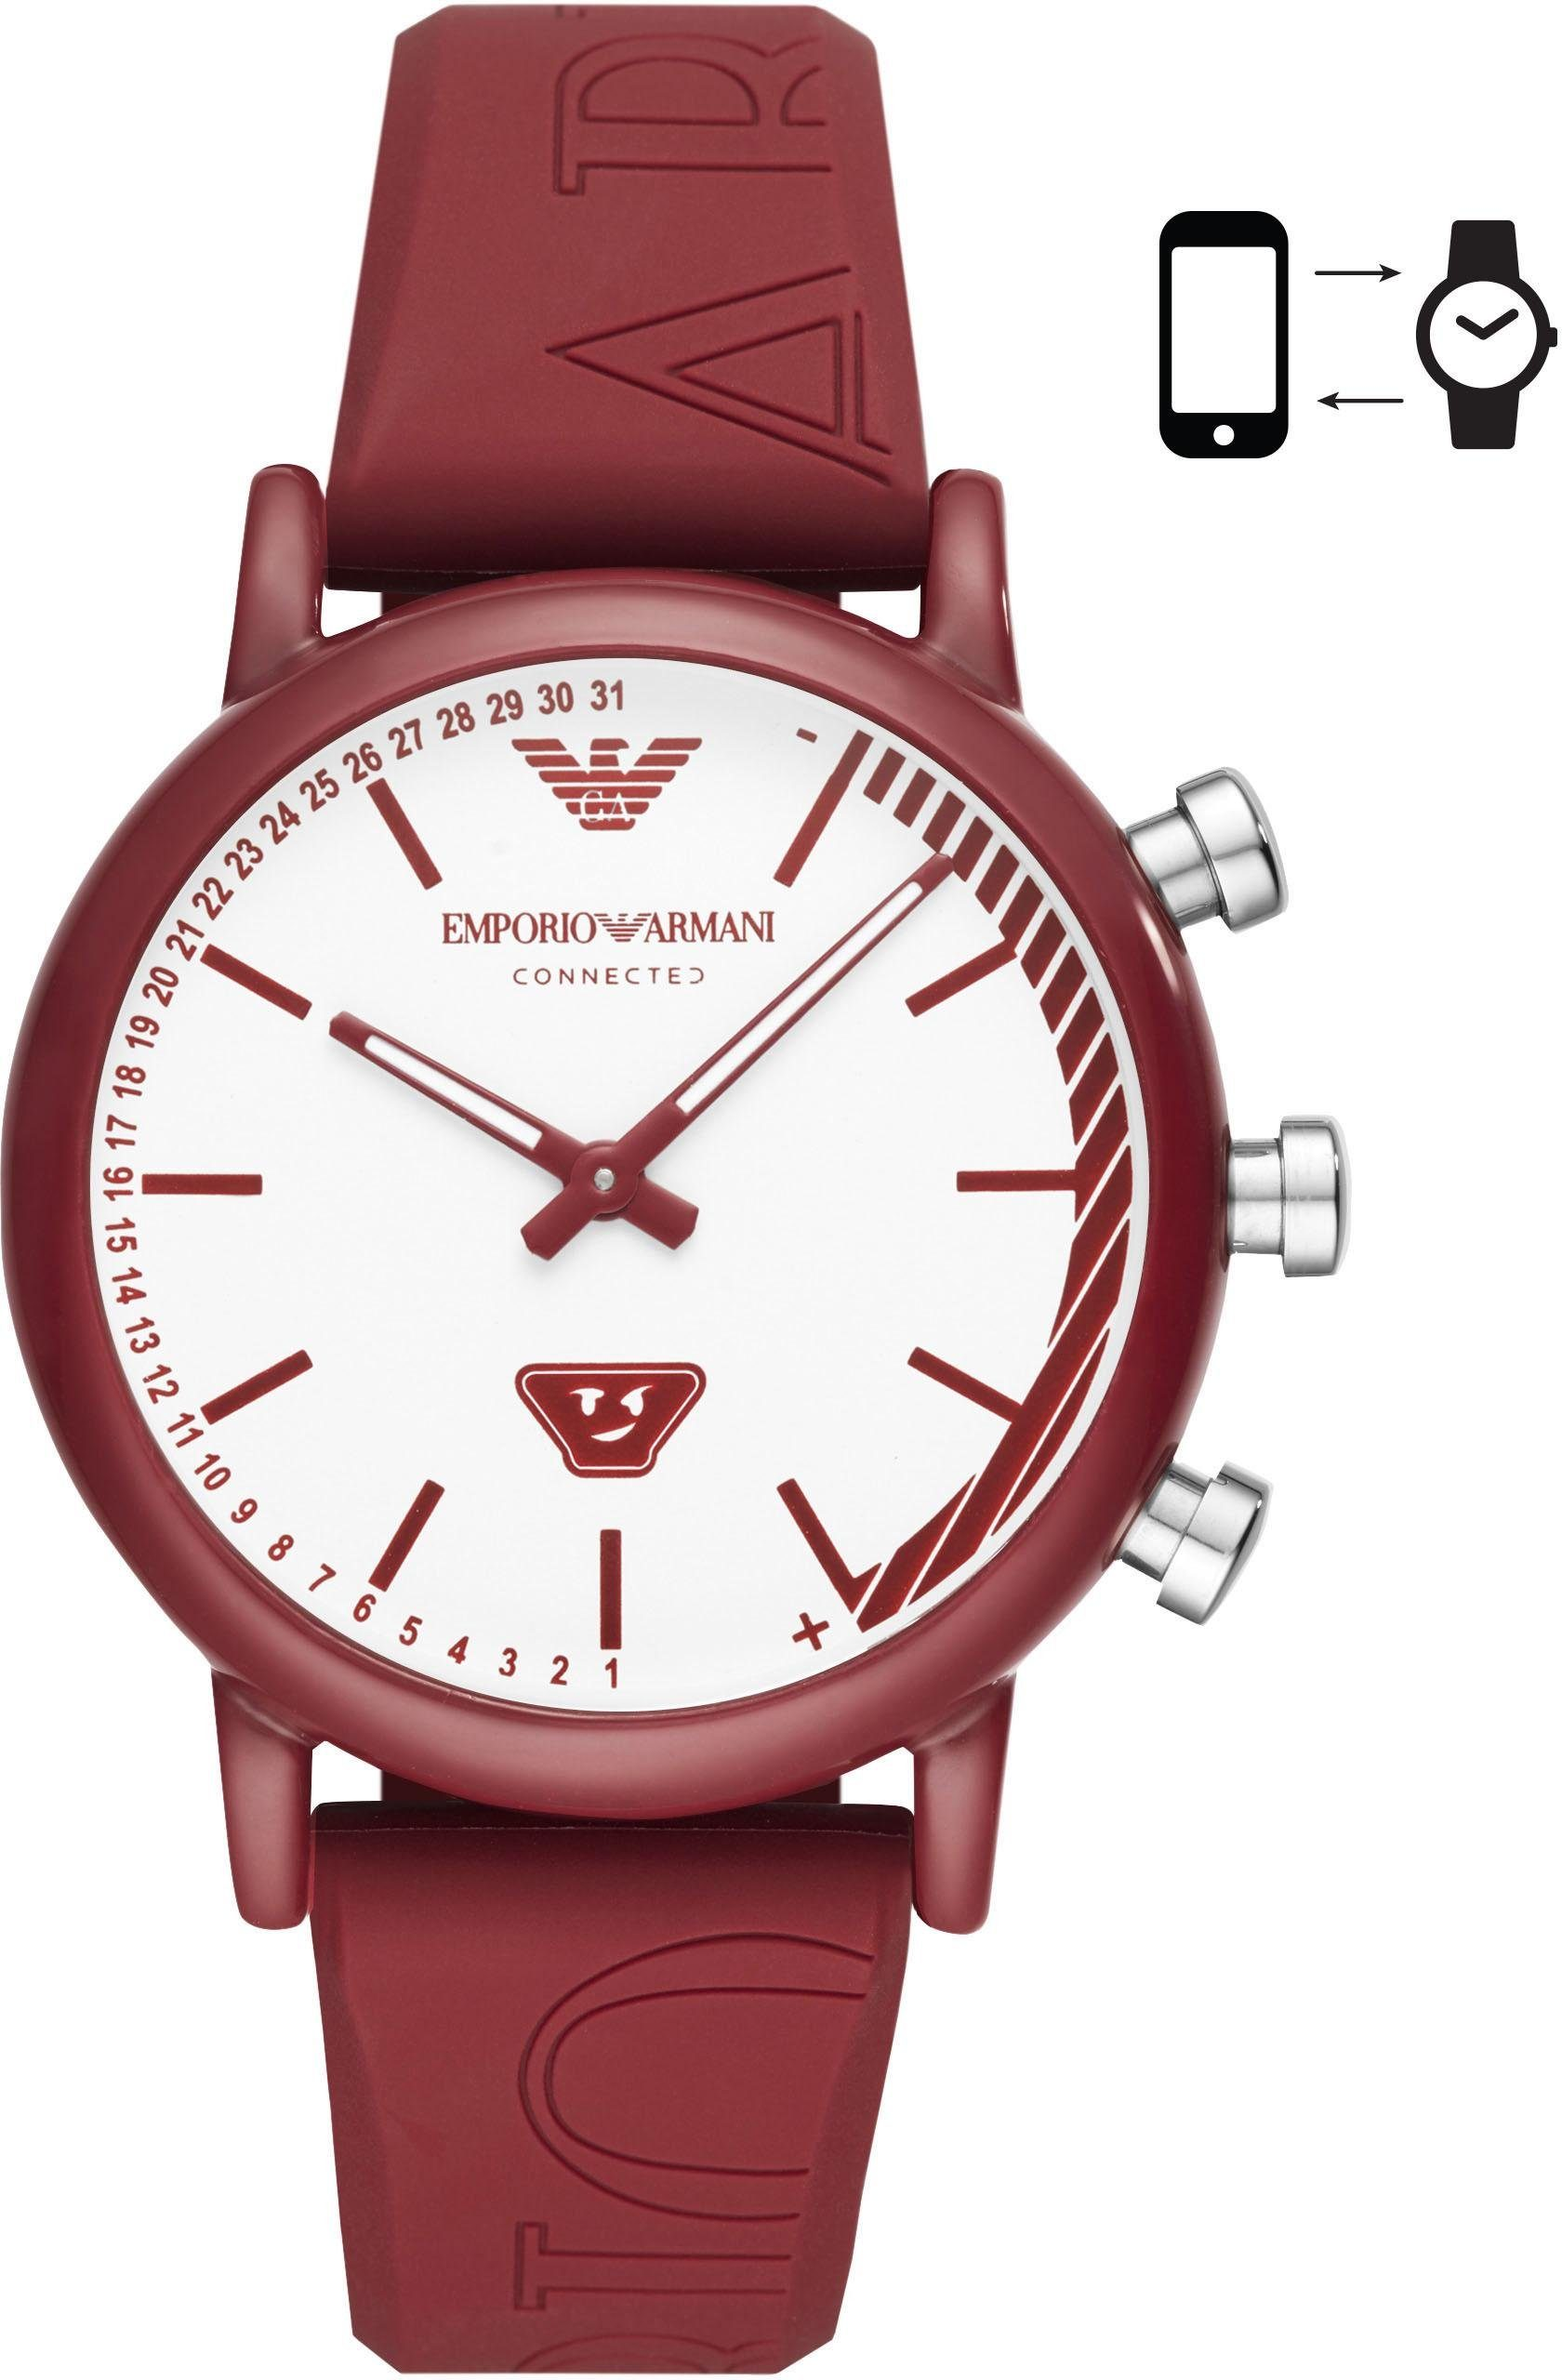 EMPORIO ARMANI CONNECTED ART3024 Smartwatch (Android Wear)